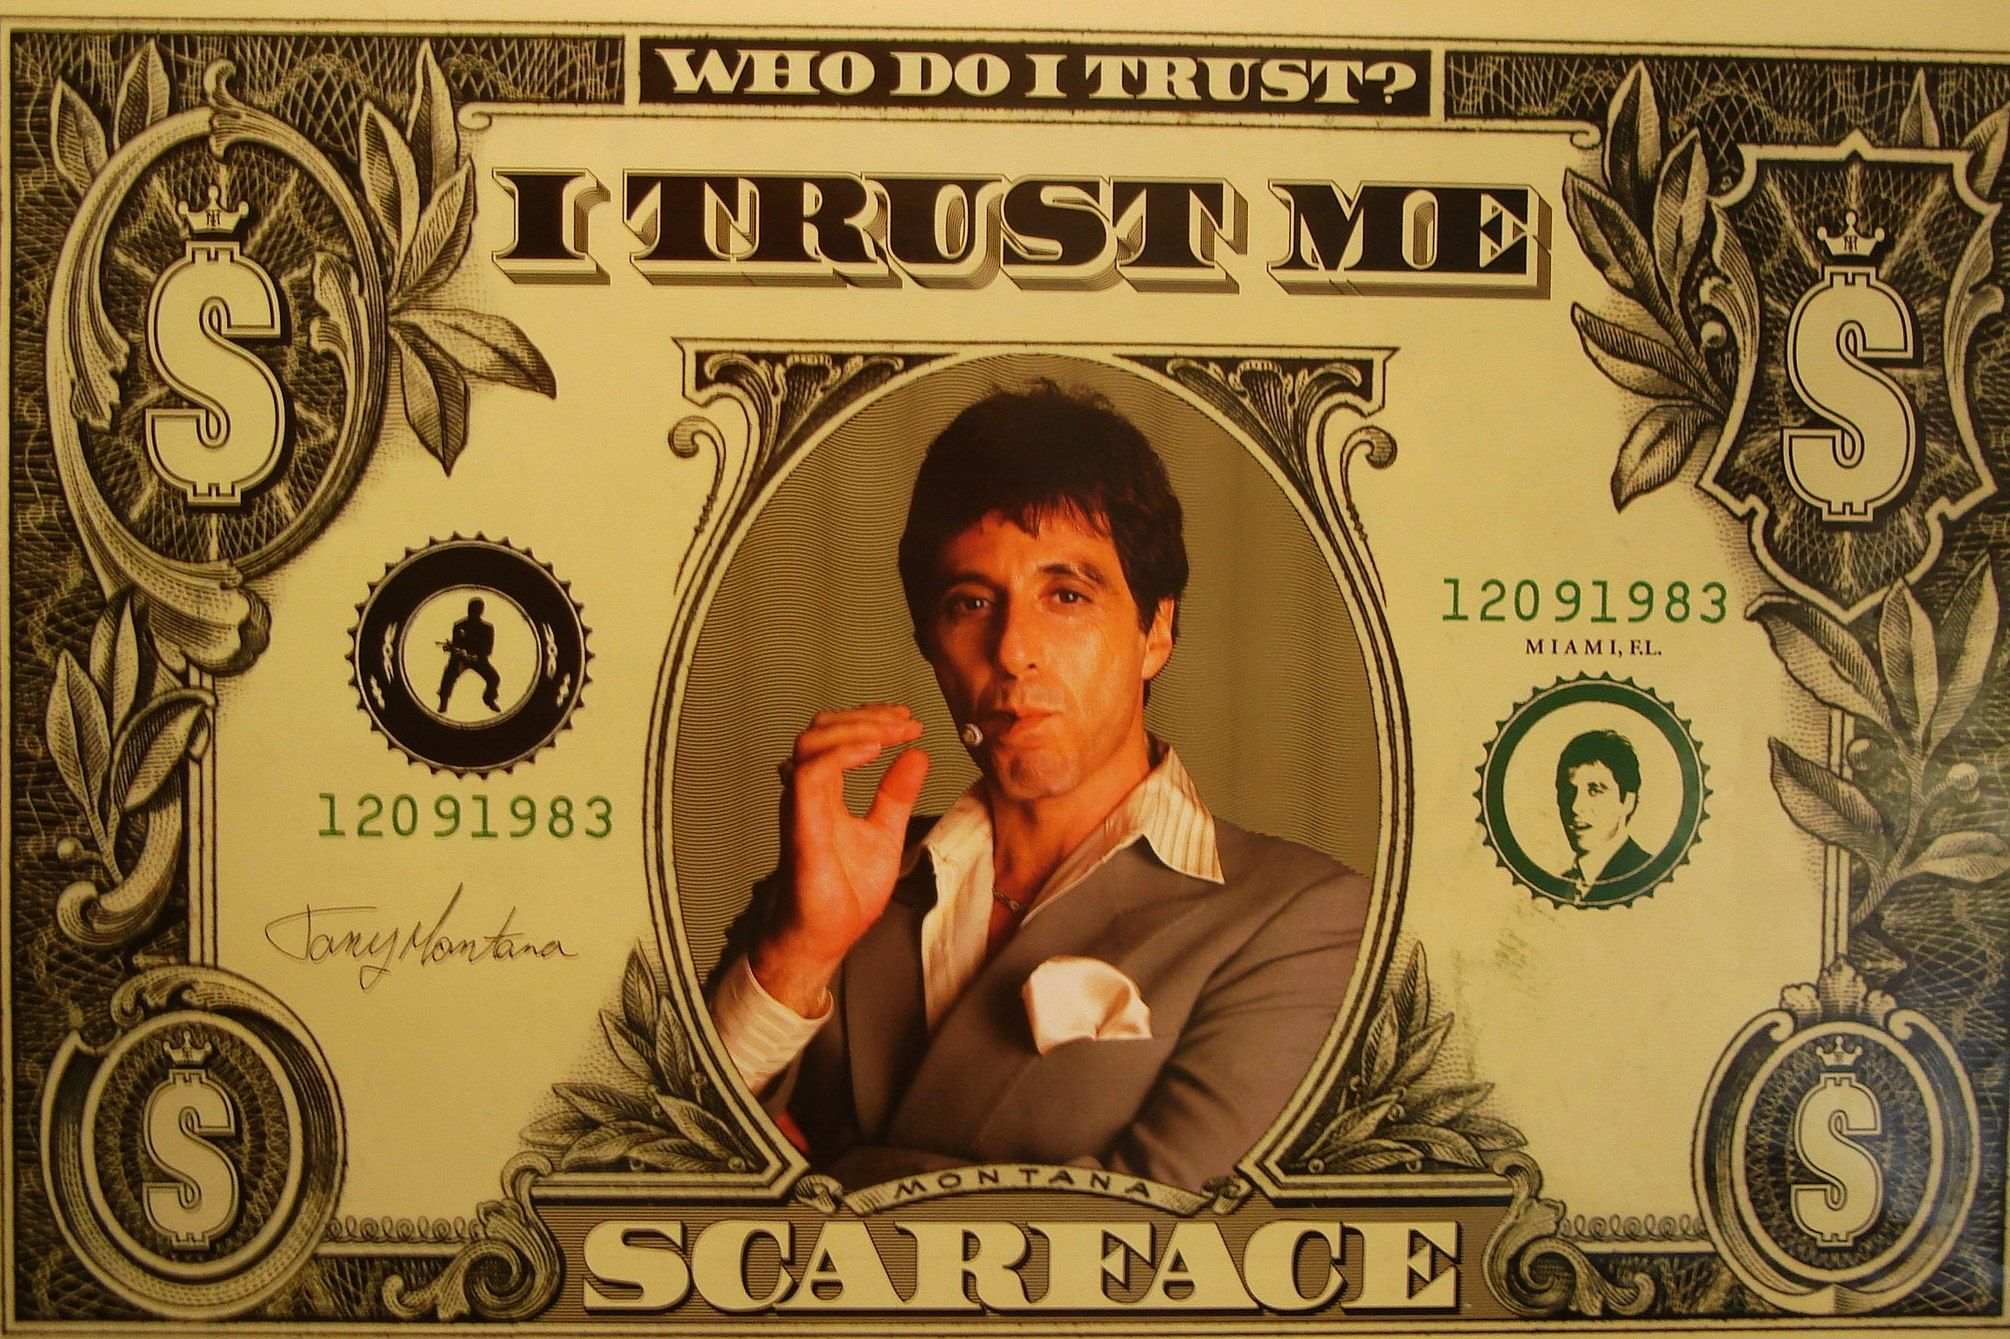 SCARFACE POSTER MONEY DOLLAR AL PACINO CLASSIC MOVIE WALL PRINT TONY MONTANA